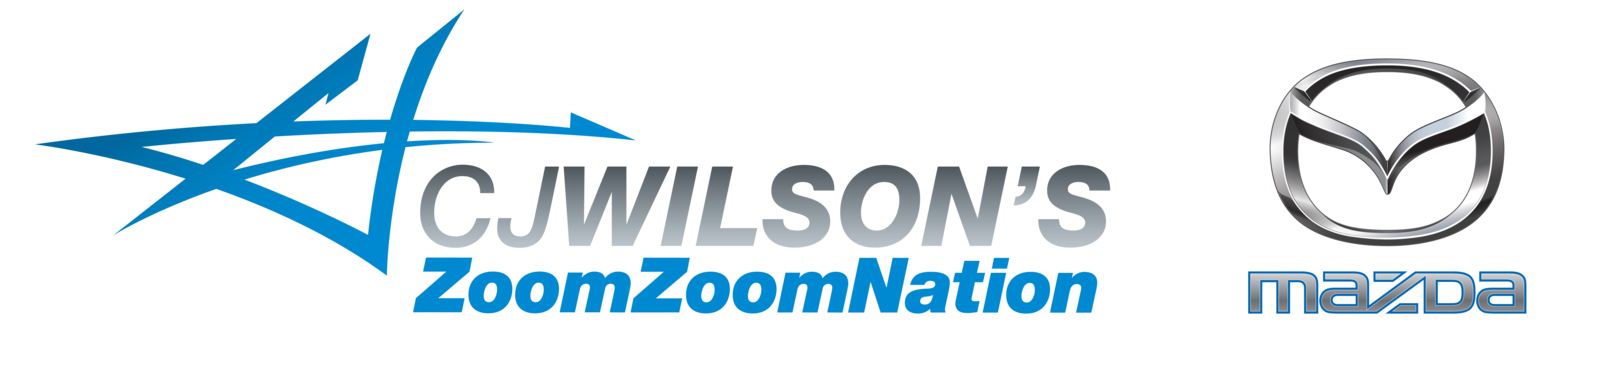 Cj Wilson Mazda >> Cj Wilson Mazda Of Ventura Ventura Ca Read Consumer Reviews